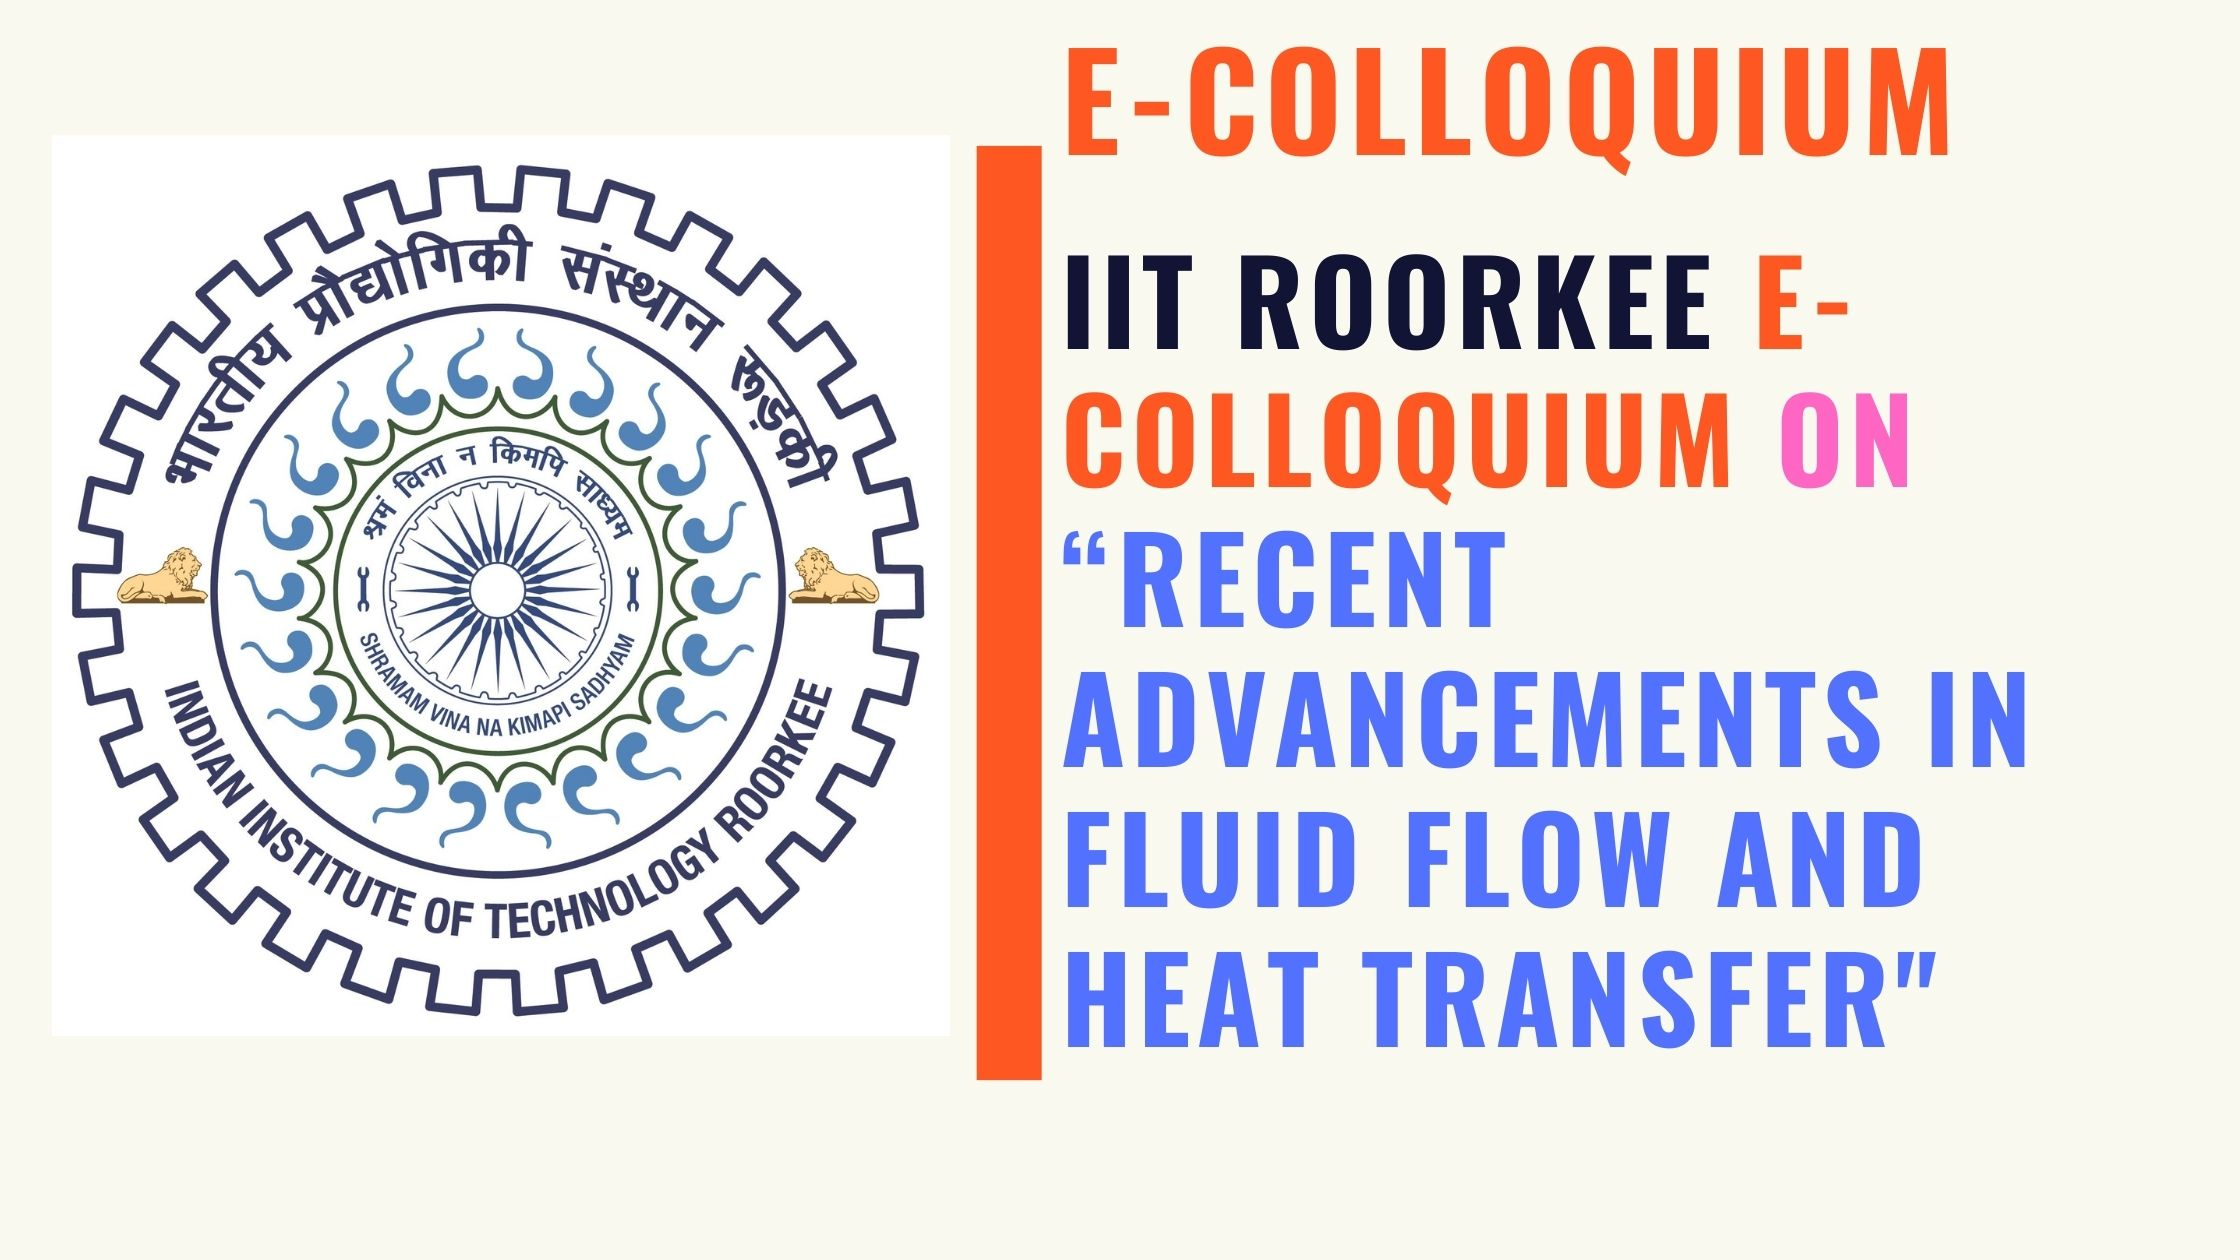 IIT Roorkee e-Colloquium on RECENT ADVANCEMENTS IN FLUID FLOW AND HEAT TRANSFER